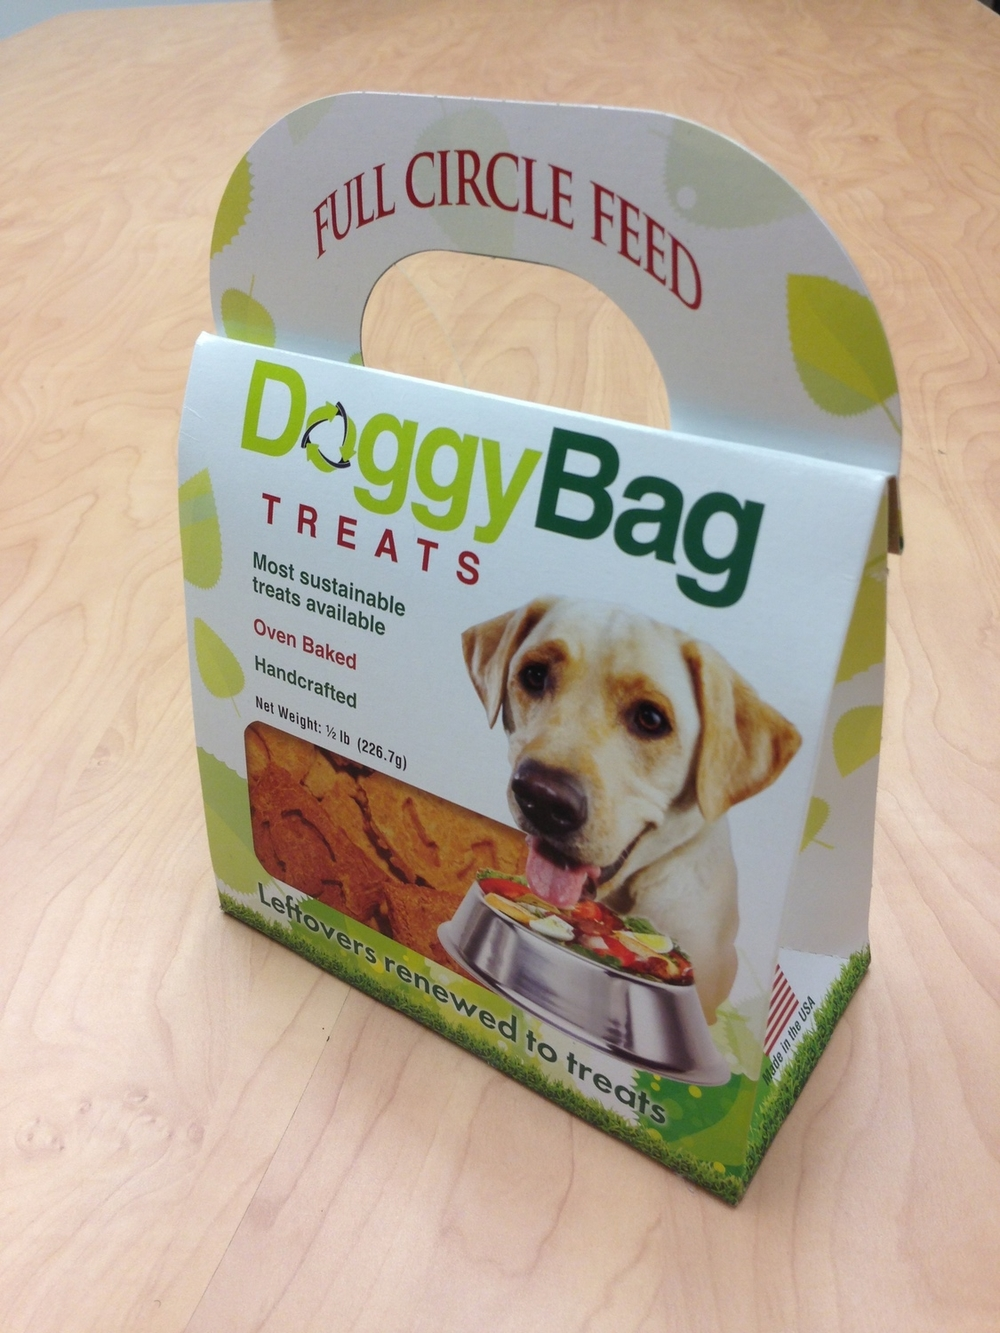 Doggy Bag.JPG